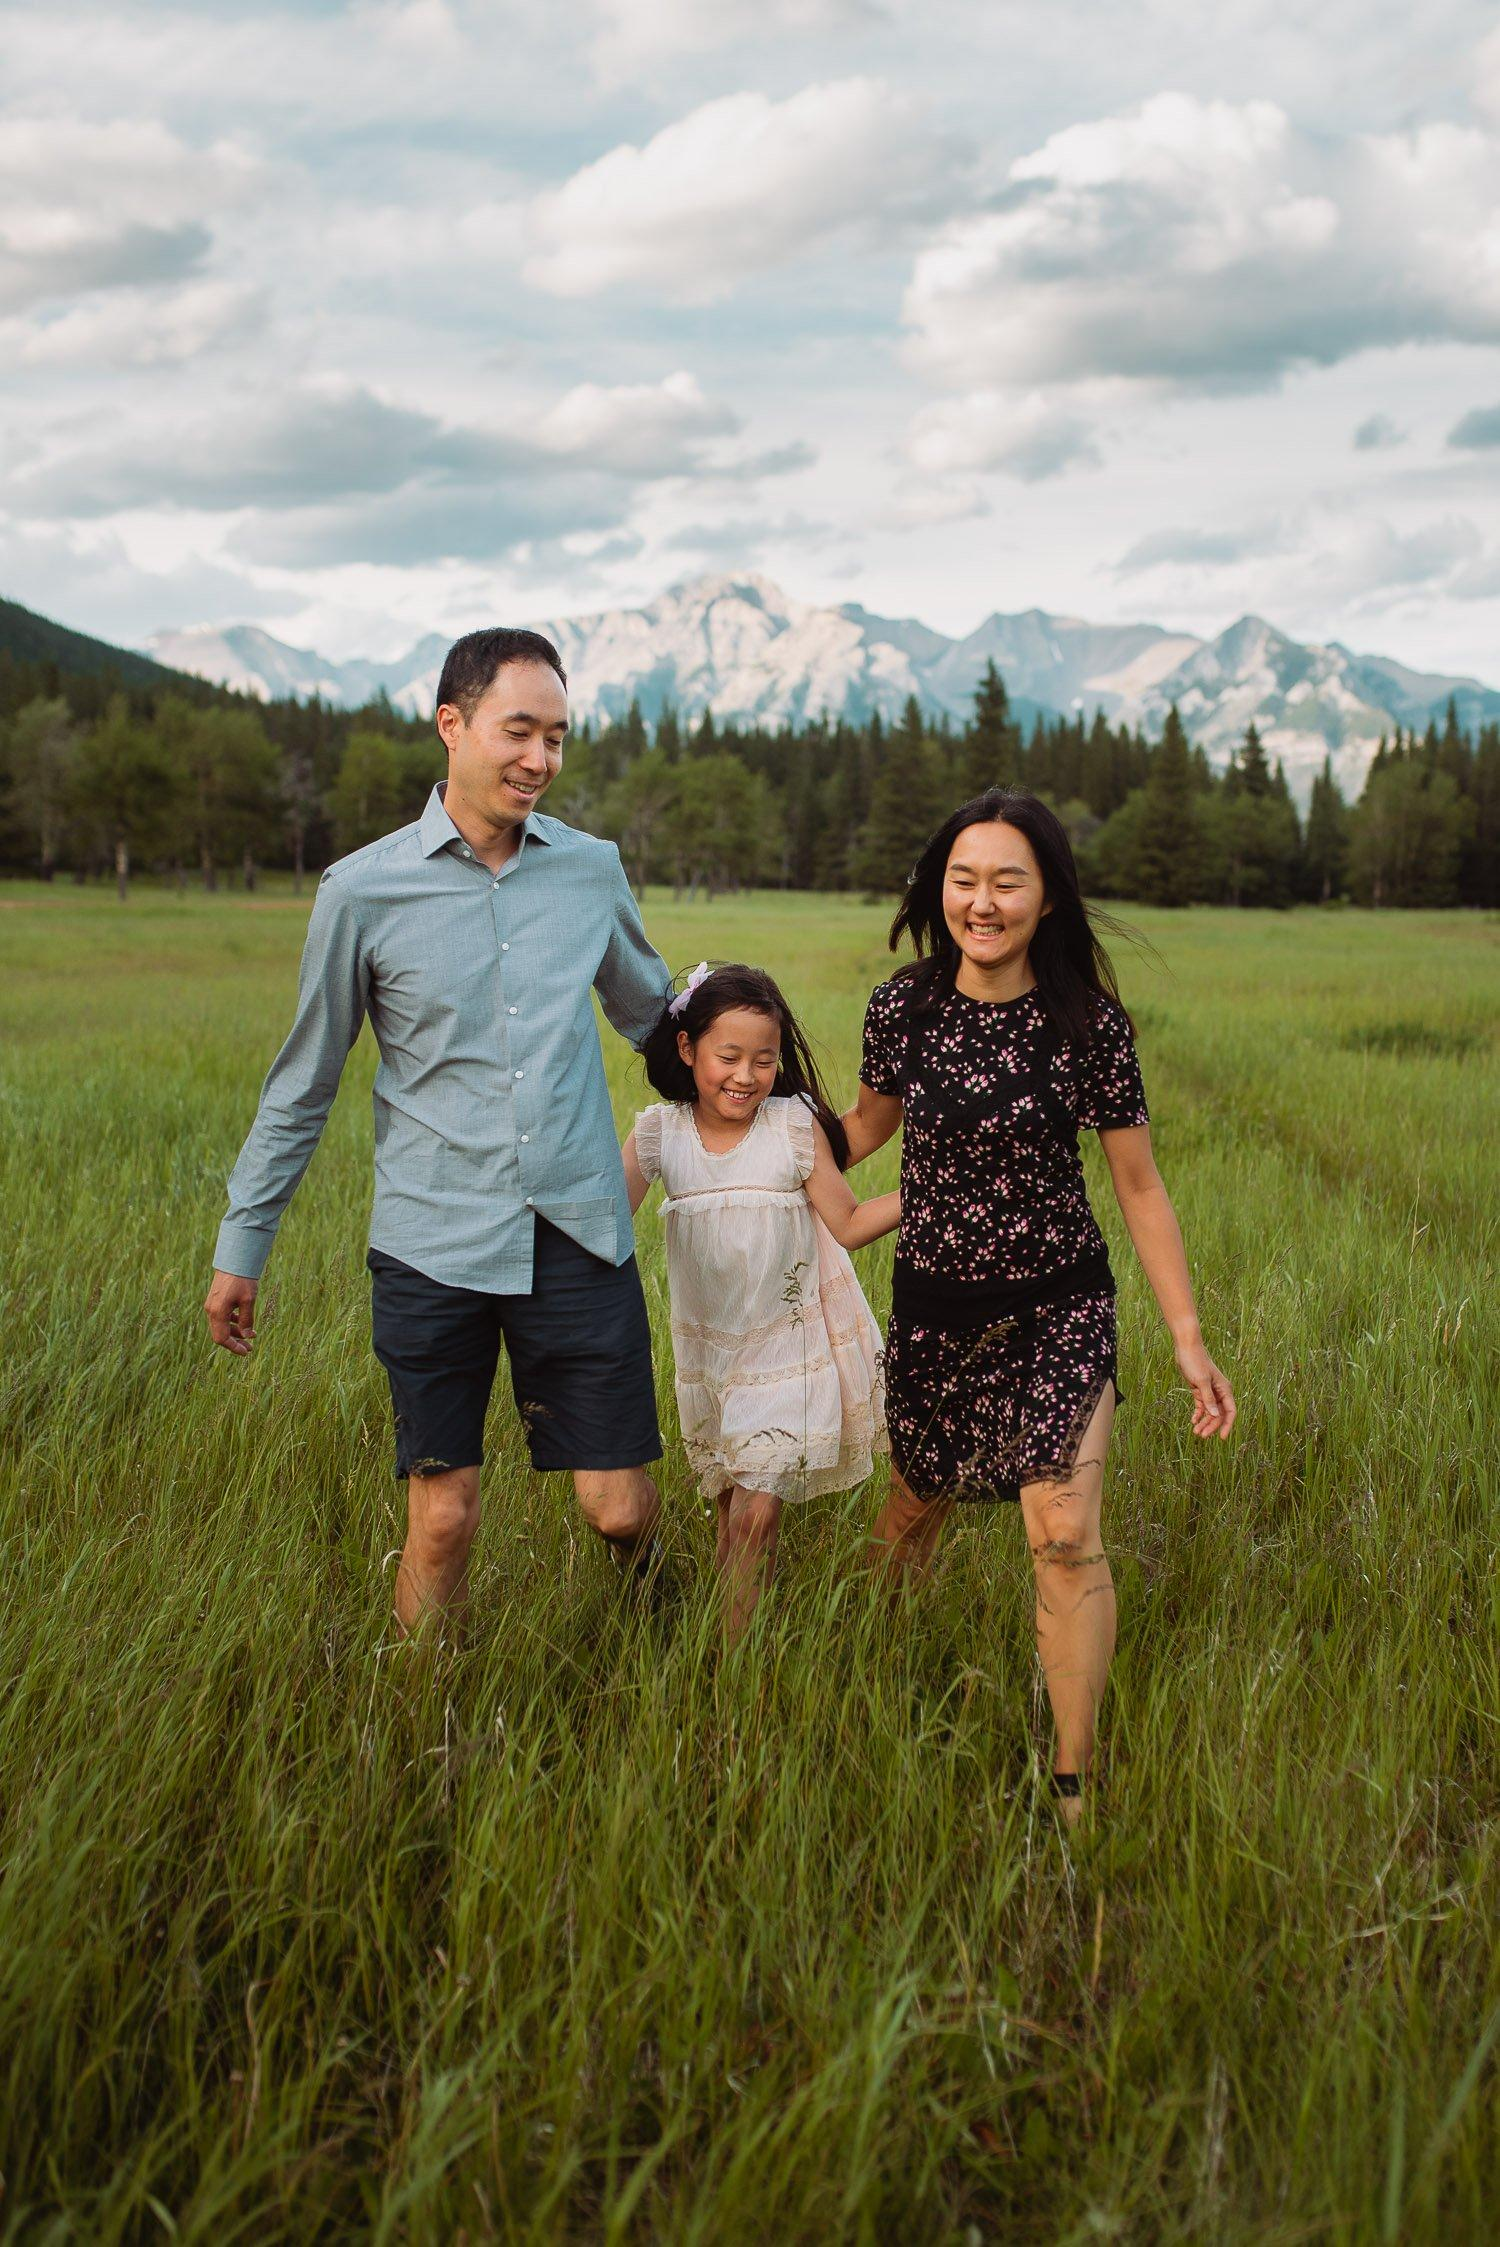 family walking in field vancouver photographer